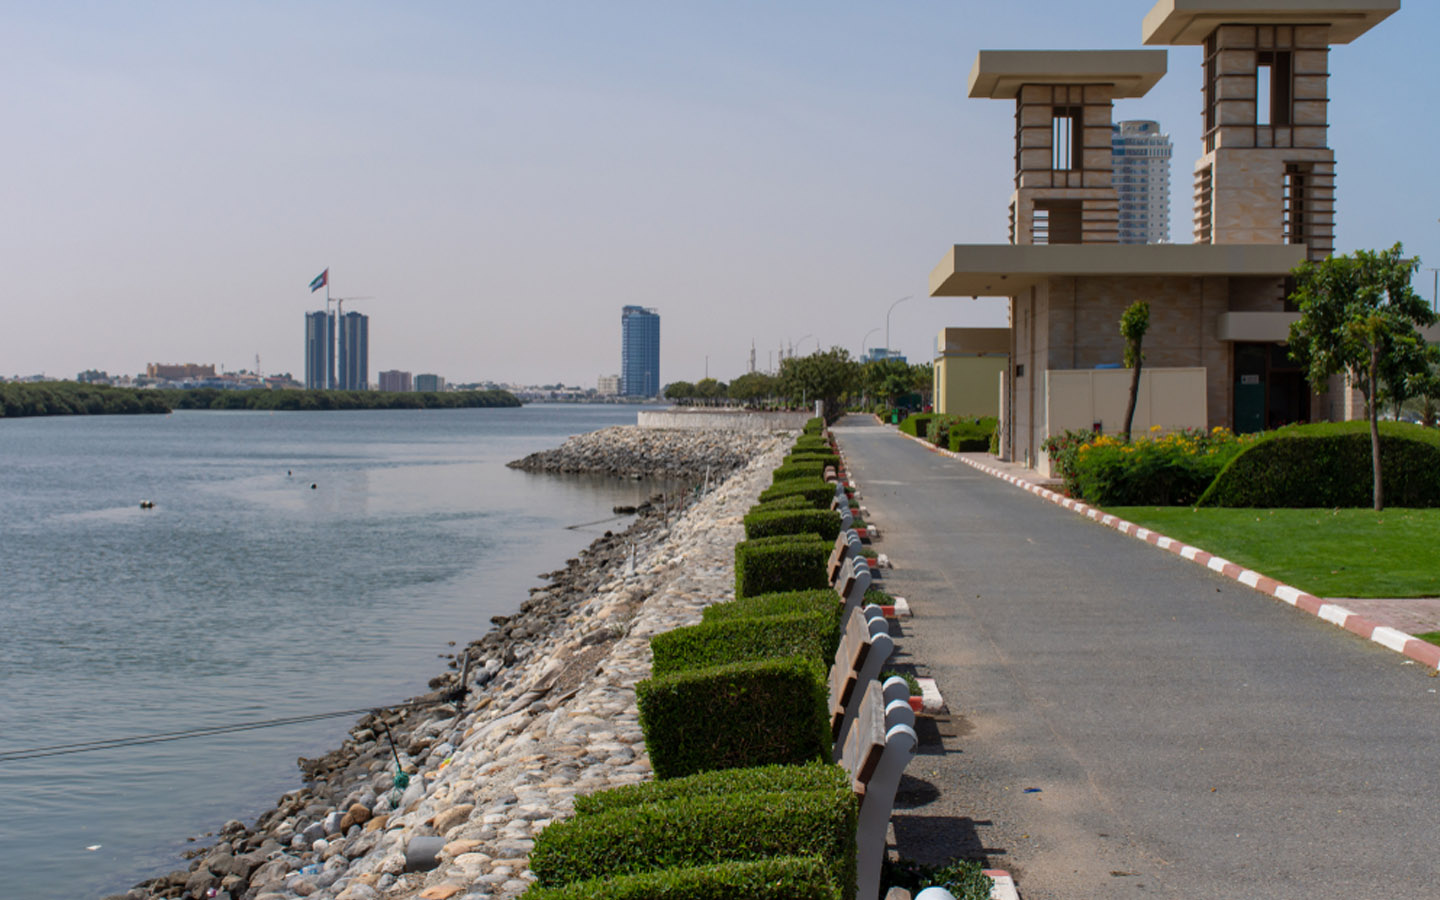 RAK Corniche is ideal for a walk or exercise